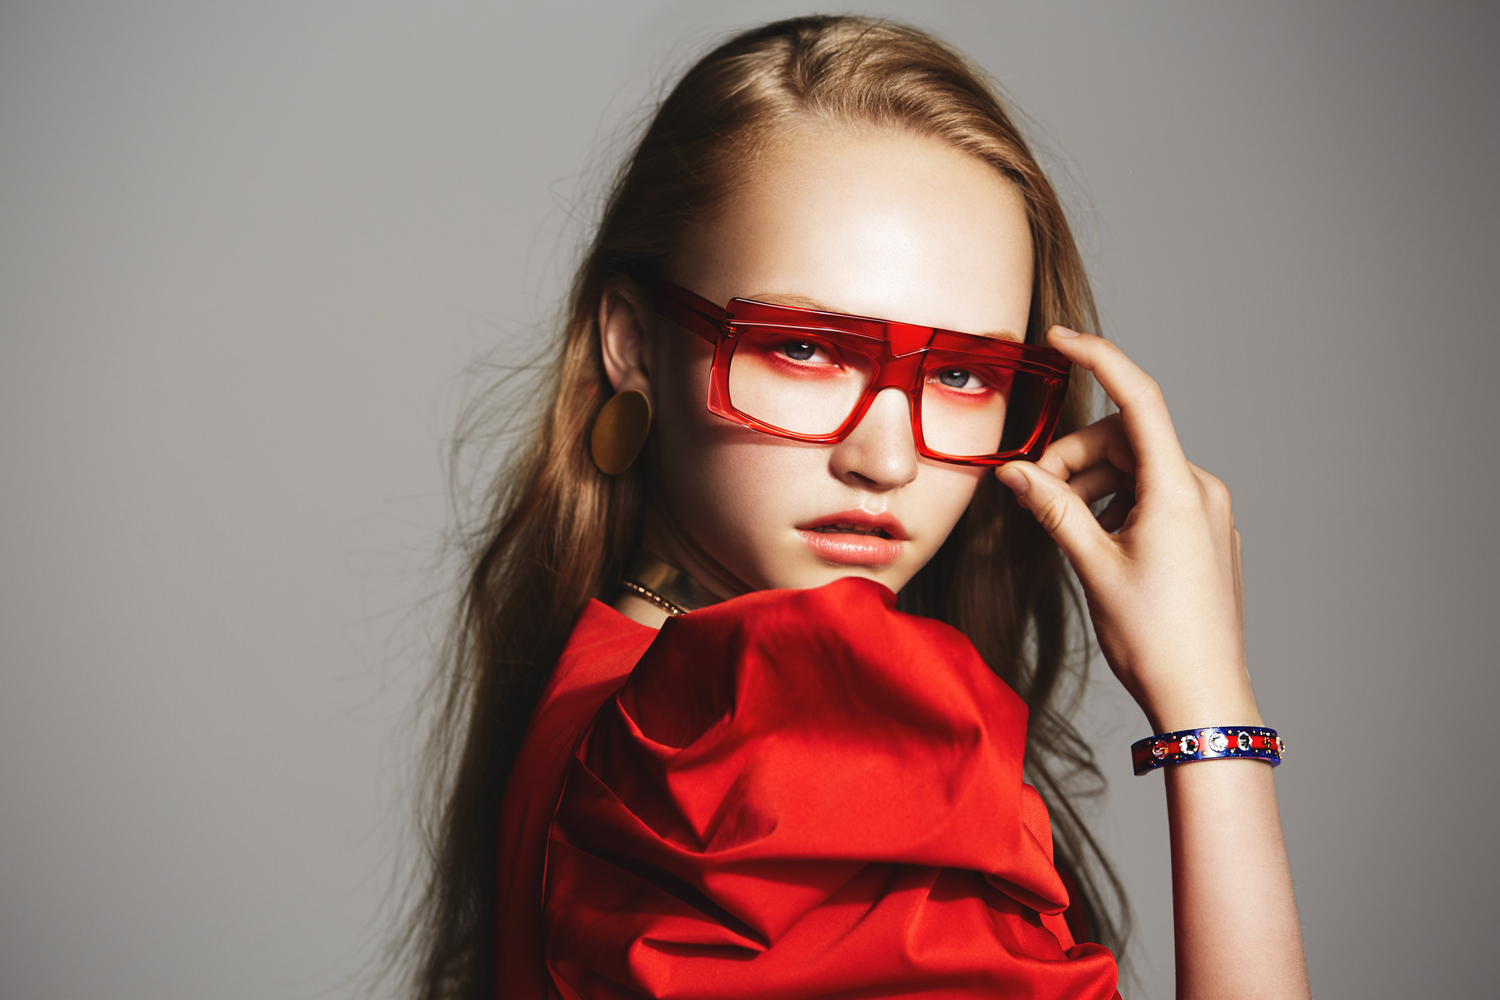 fashion editorial model wearing red outfit and red eyeshadow